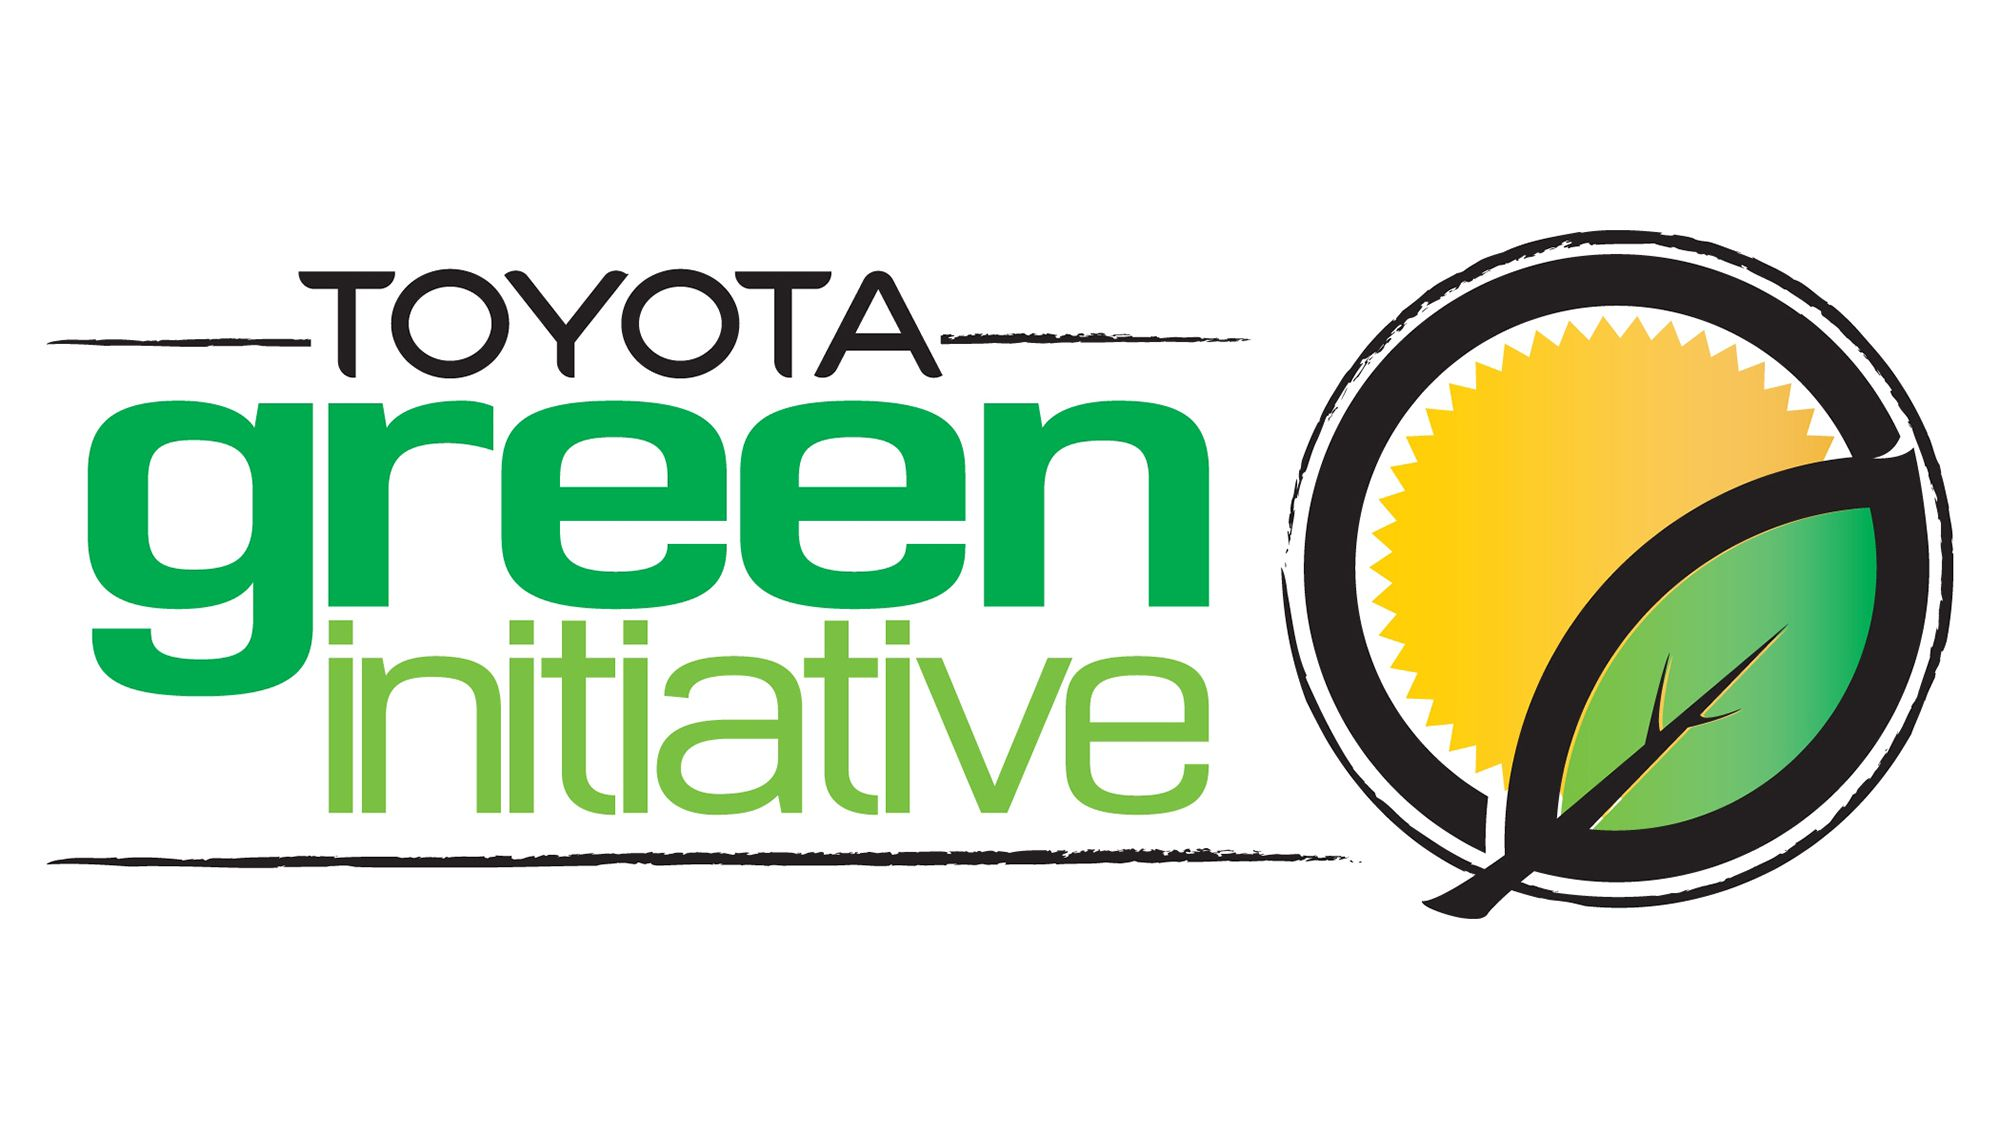 toyota goes green essay Car companies like toyota have gone green to look for another alternative to rising fuel prices and better gas mileage with their introduction of the prius, toyota has become the world's we will write a custom essay sample on toyota goes green specifically for you for only $1638 $139/page.